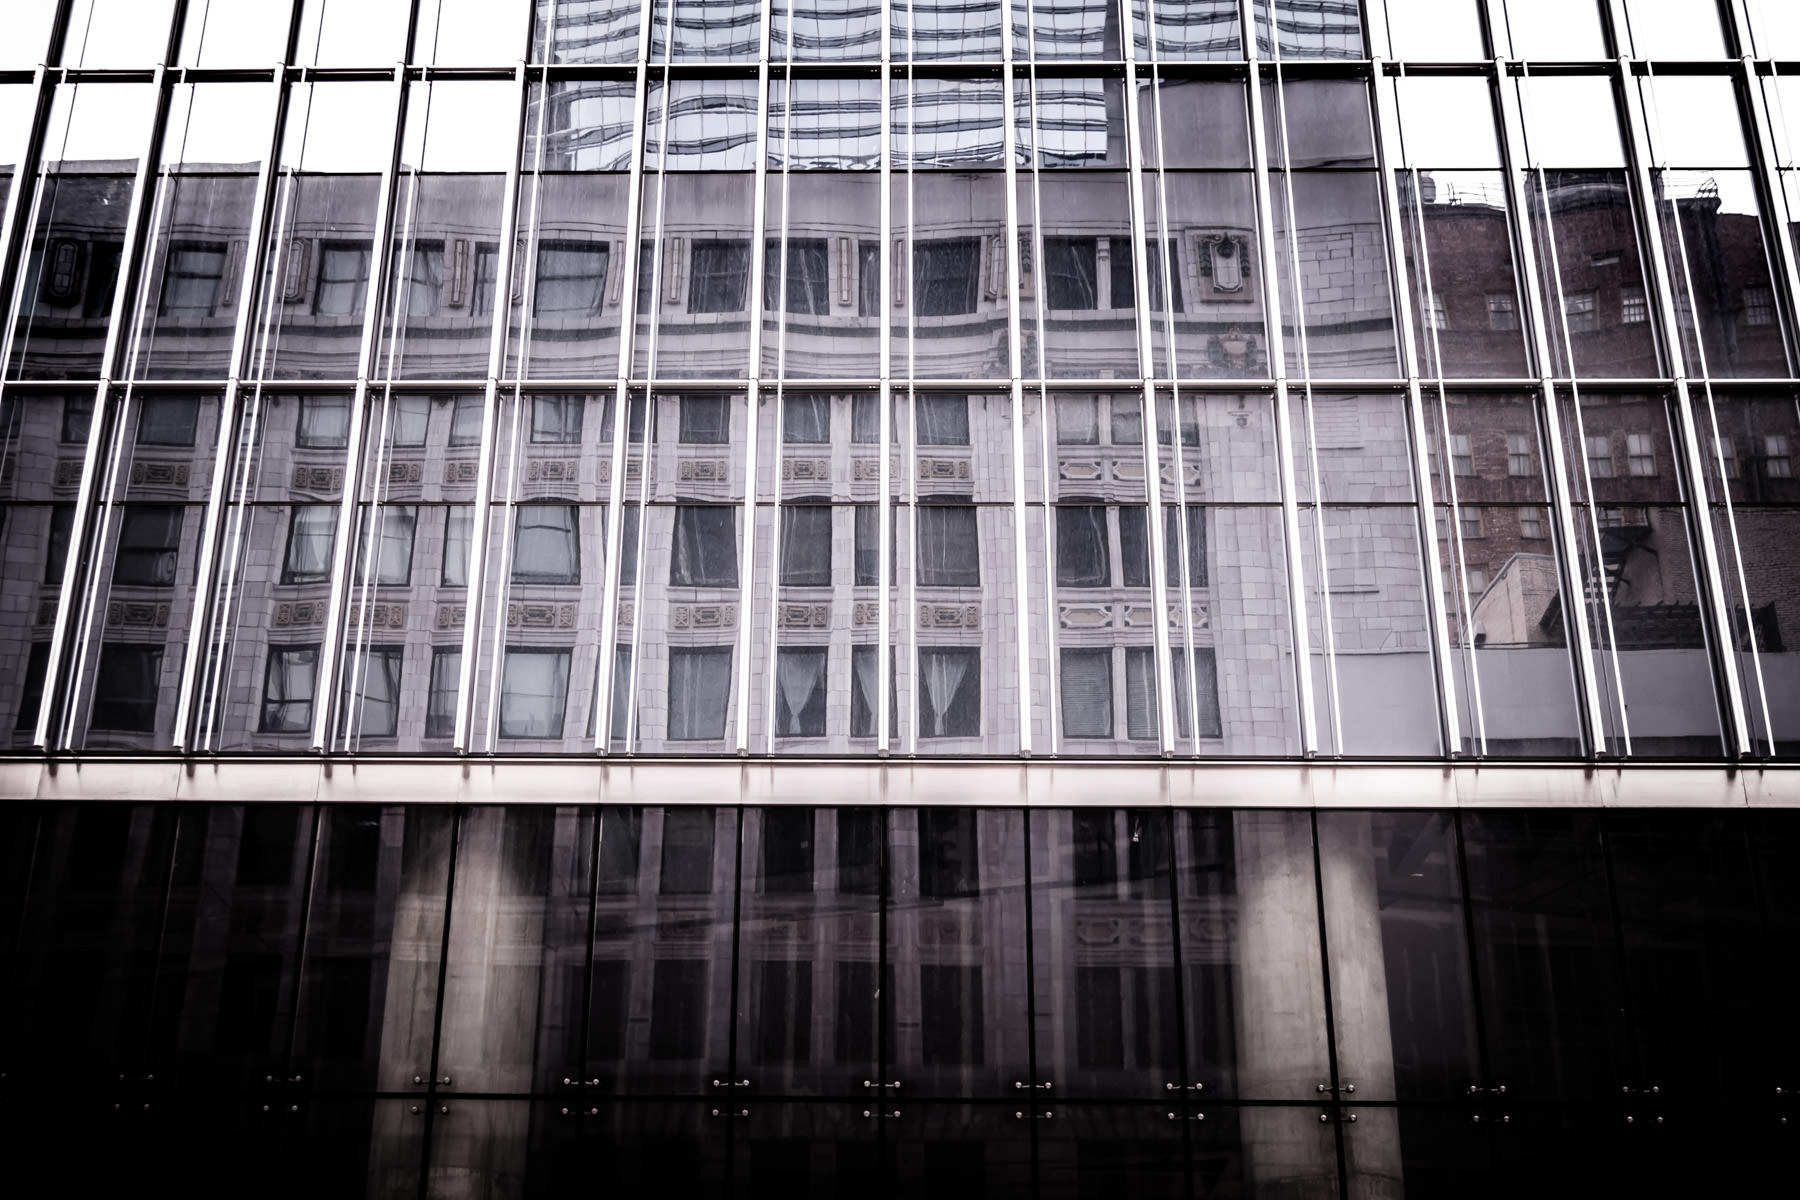 Adjacent buildings are reflected in the glass façade of Downtown Houston's 609 Main at Texas.